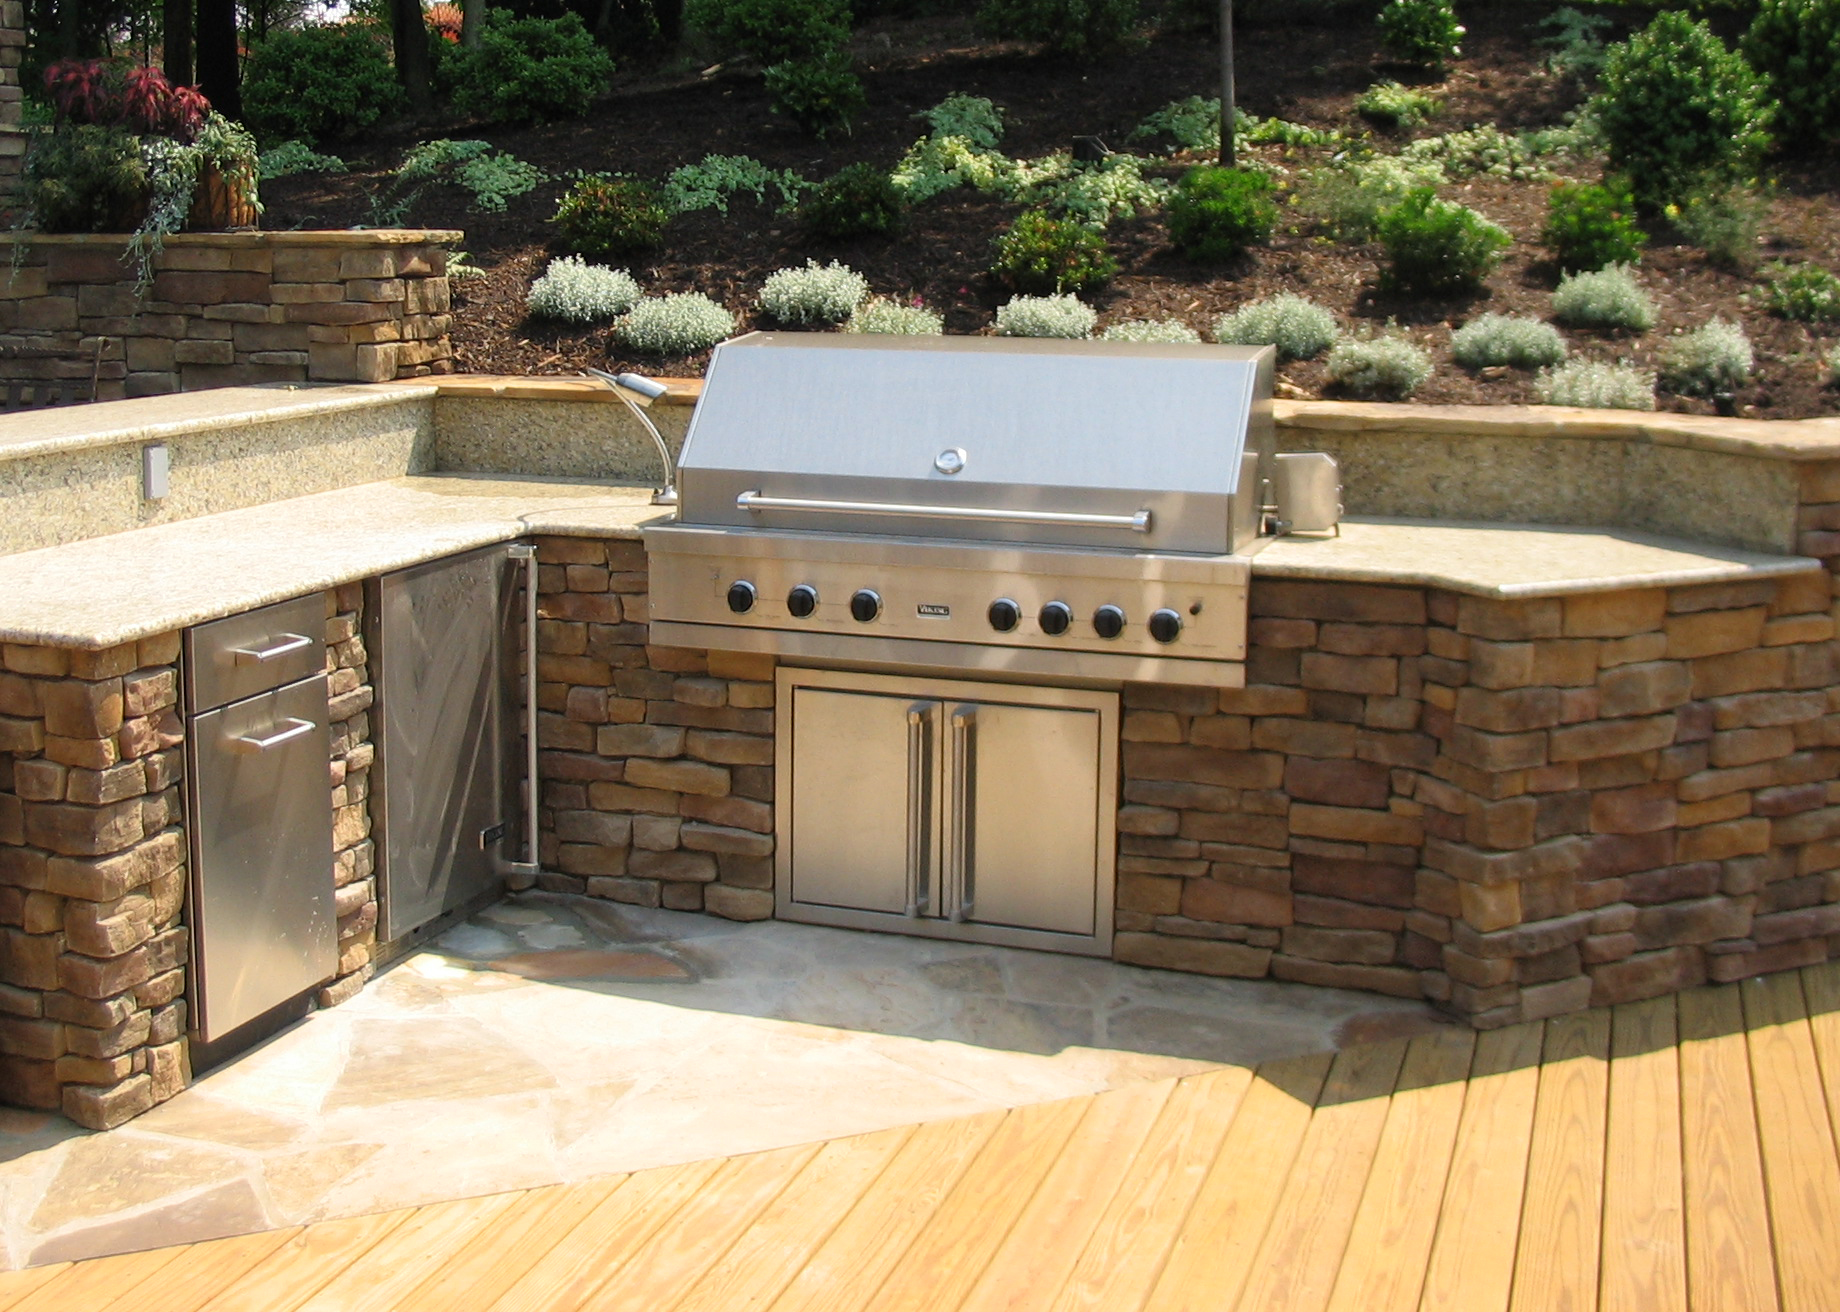 Outdoor Grill Design Ideas big outdoor grill design ideas Patio Bbq Designs Patio Design Patio Ideas